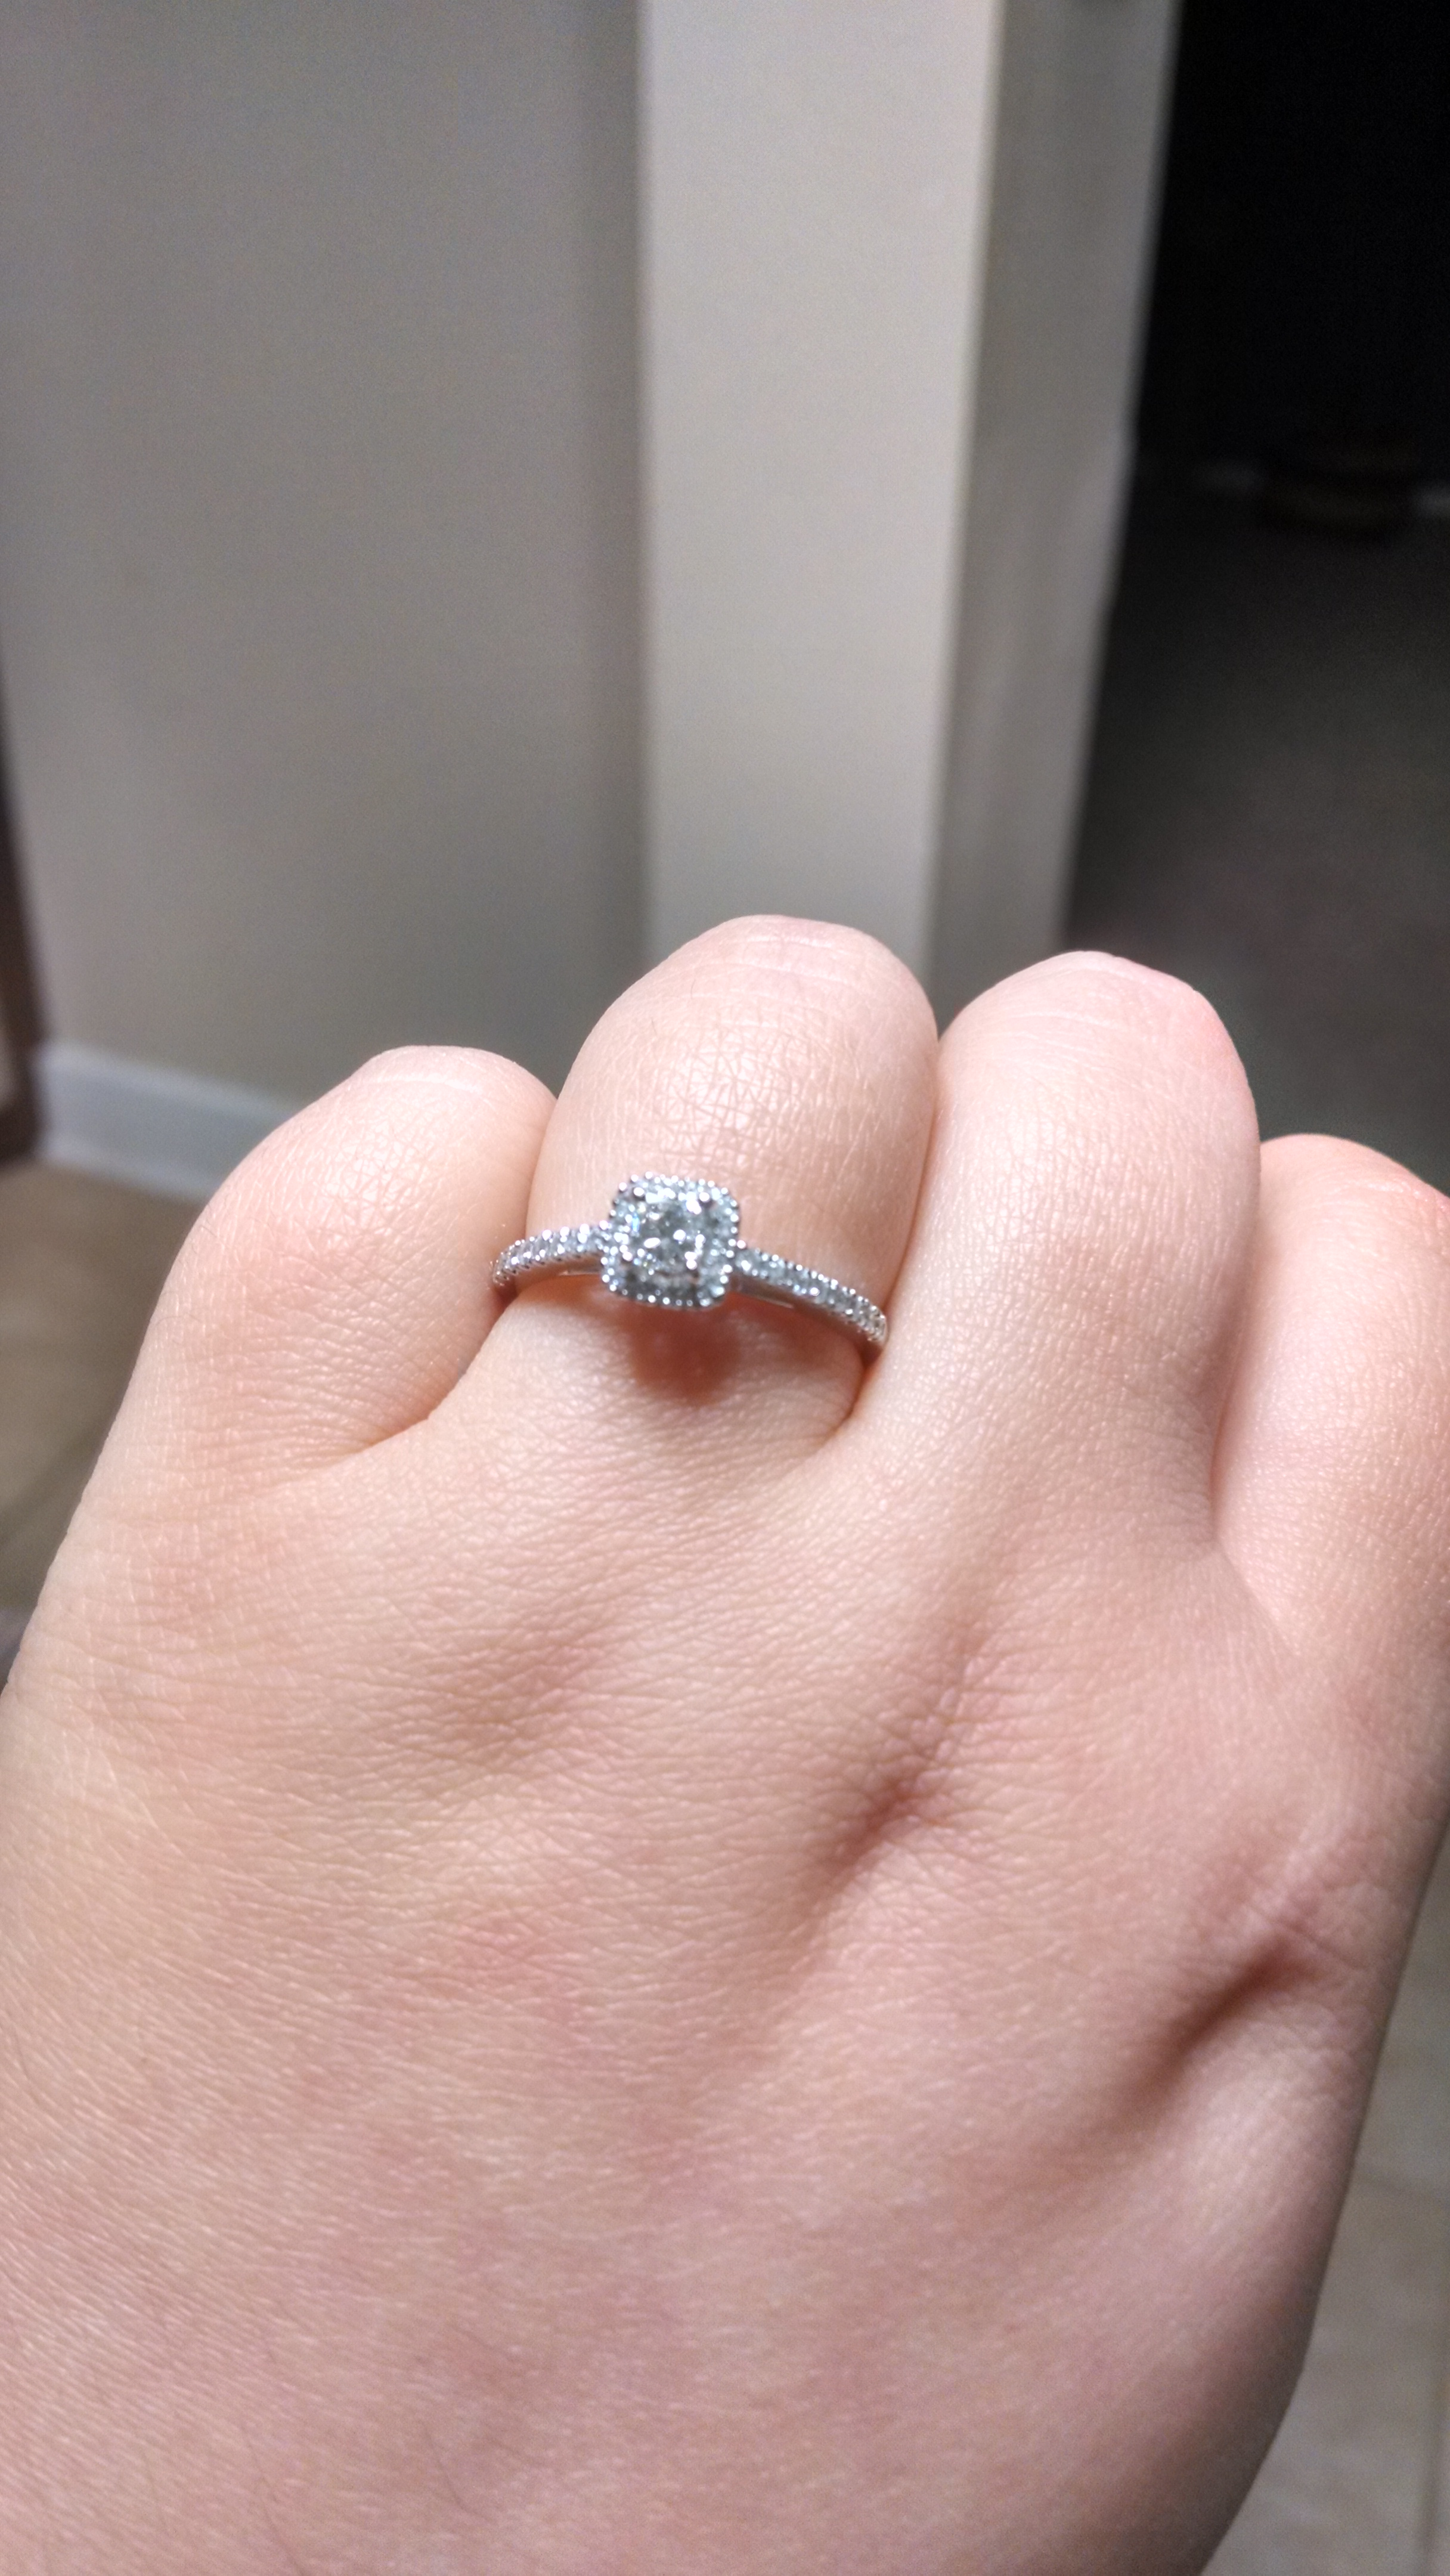 Show Off Your Rings Here! - Page 29 — The Knot